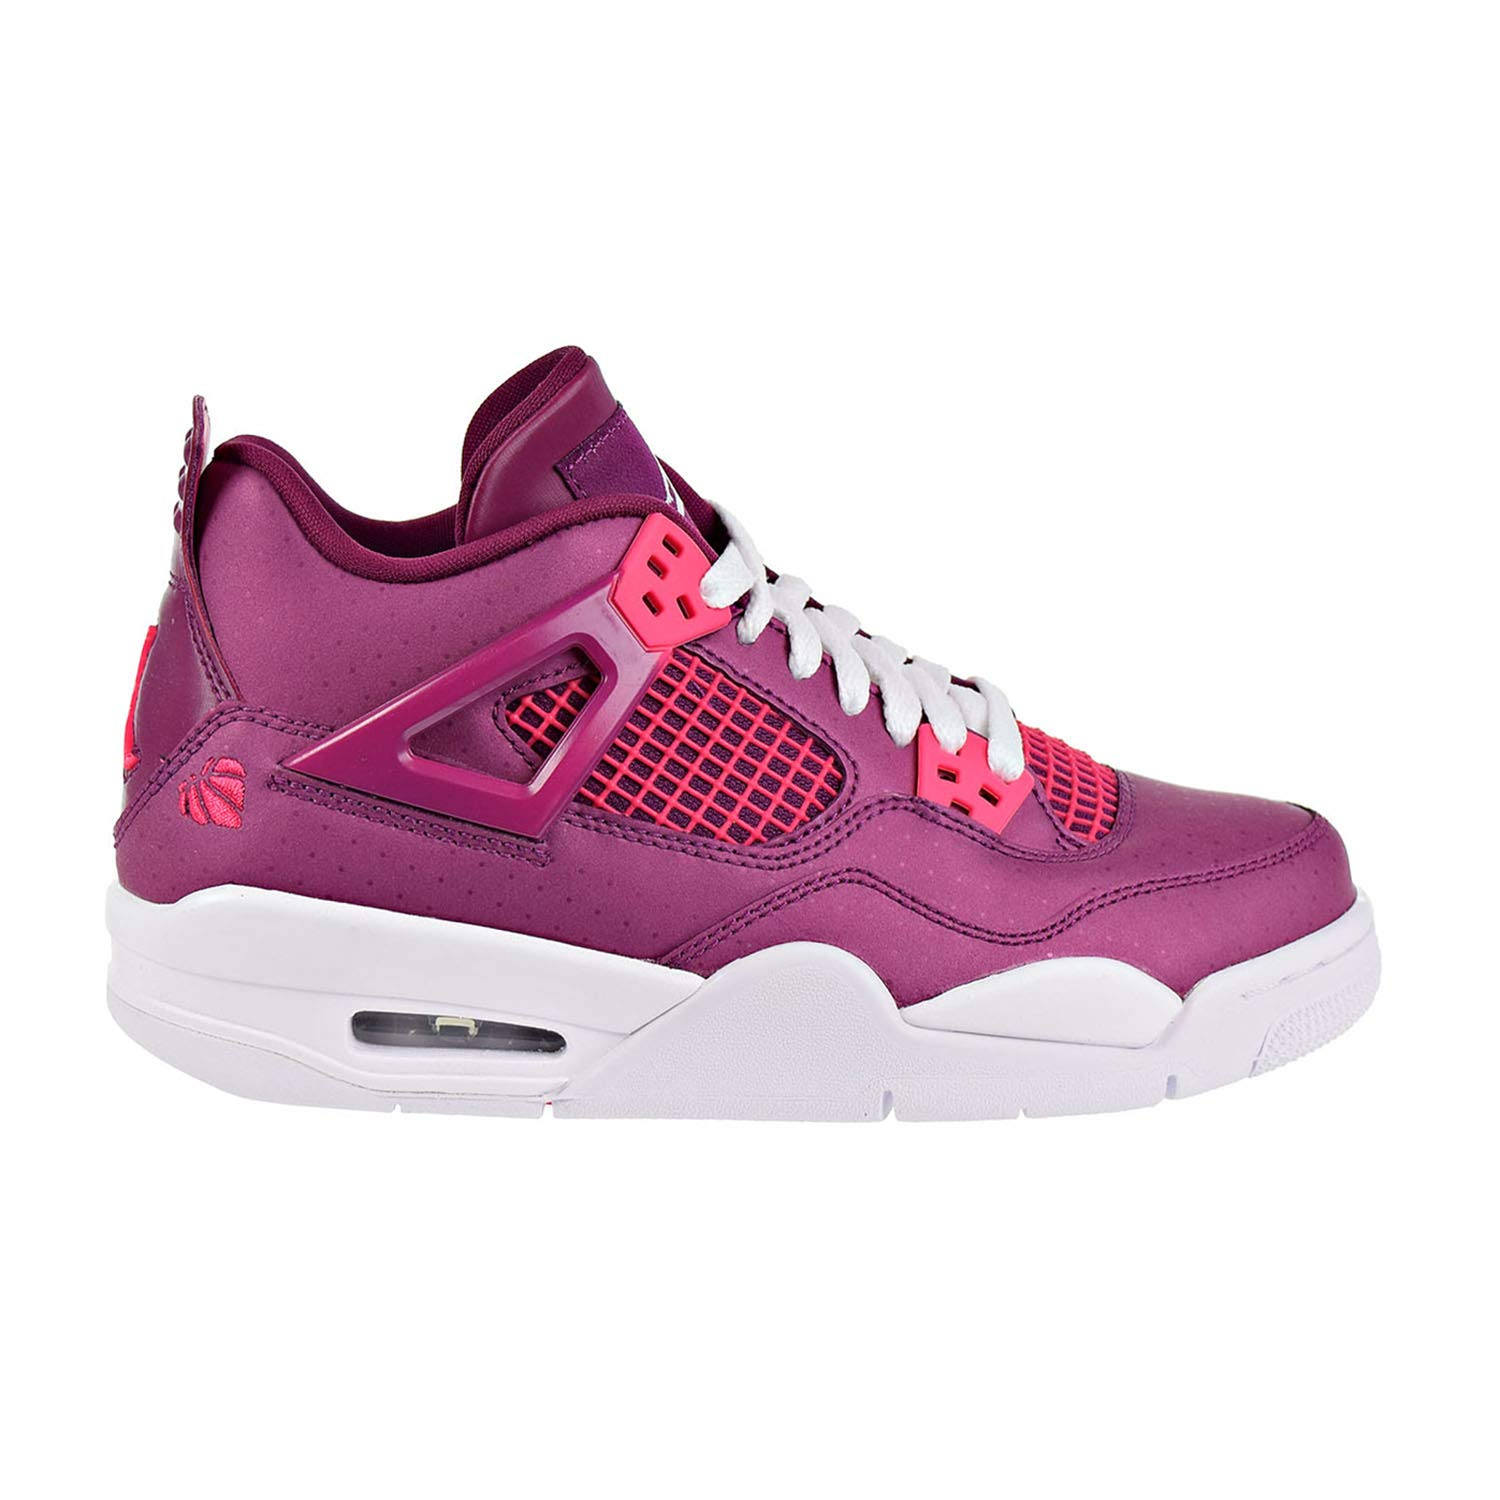 Air Jordan 4 Retro Big Kids Shoes True Berry/Rush Pink/White 487724-661